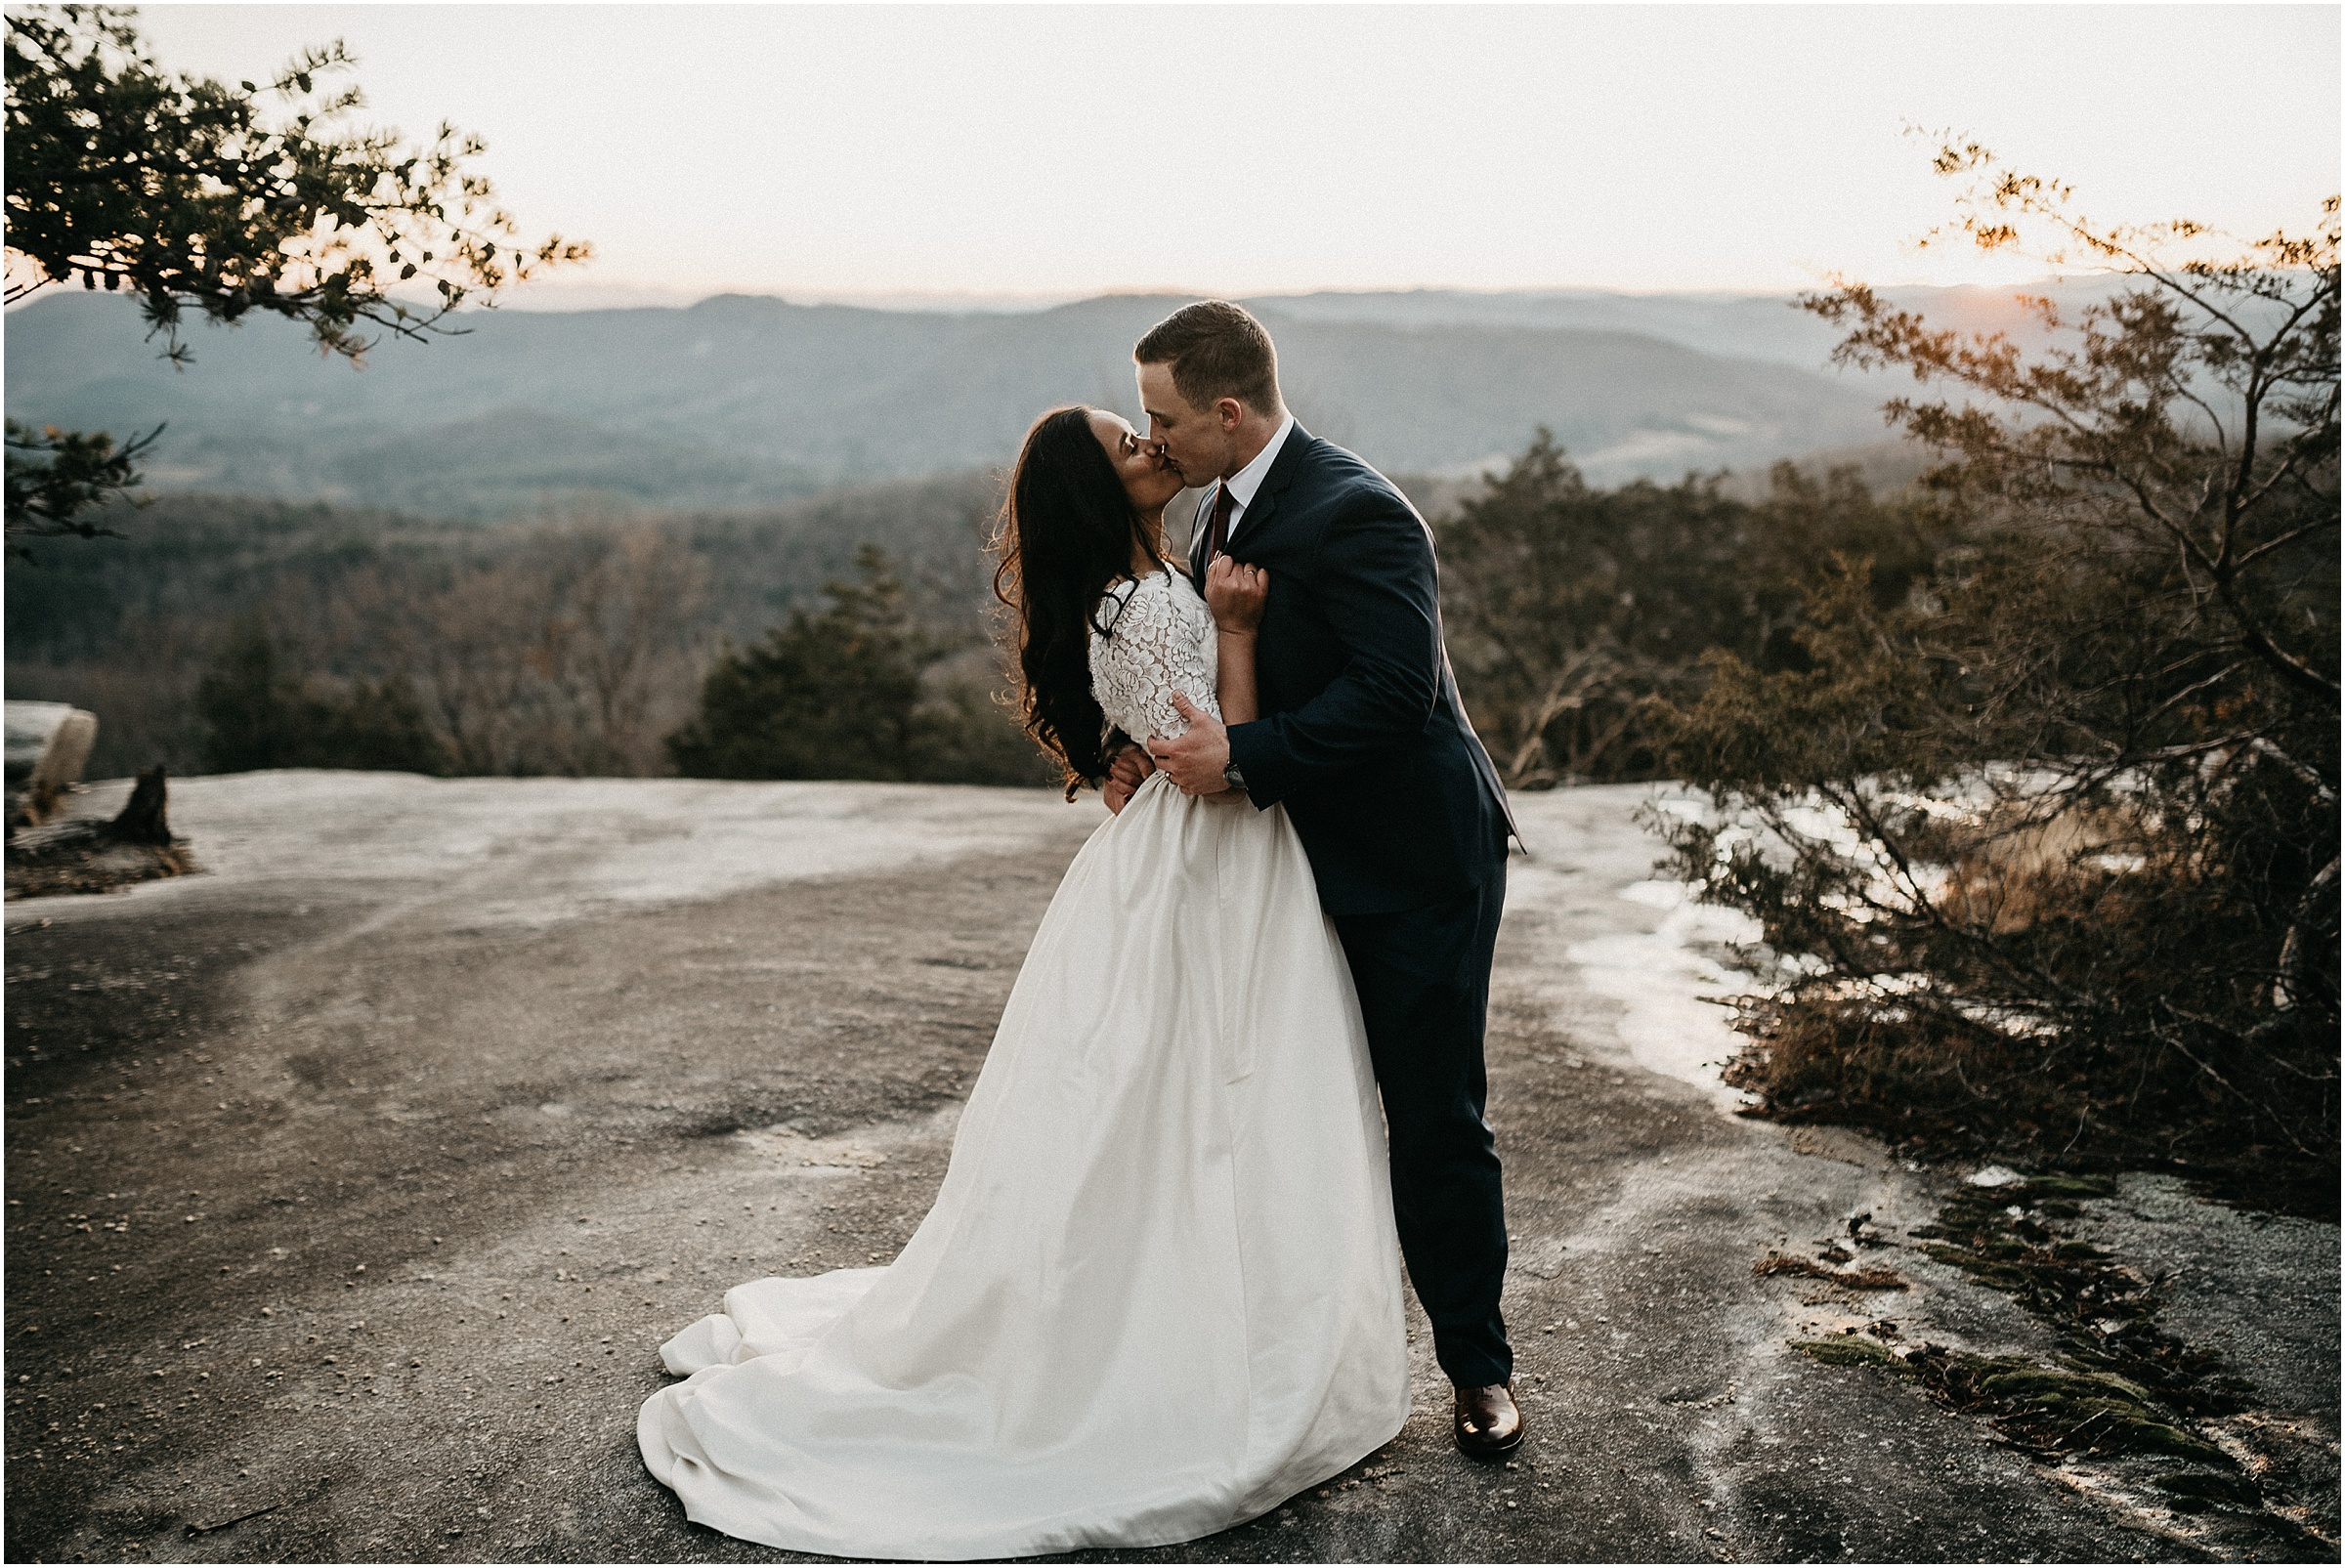 Stone_Mountain_NC_Elopement_63.JPG